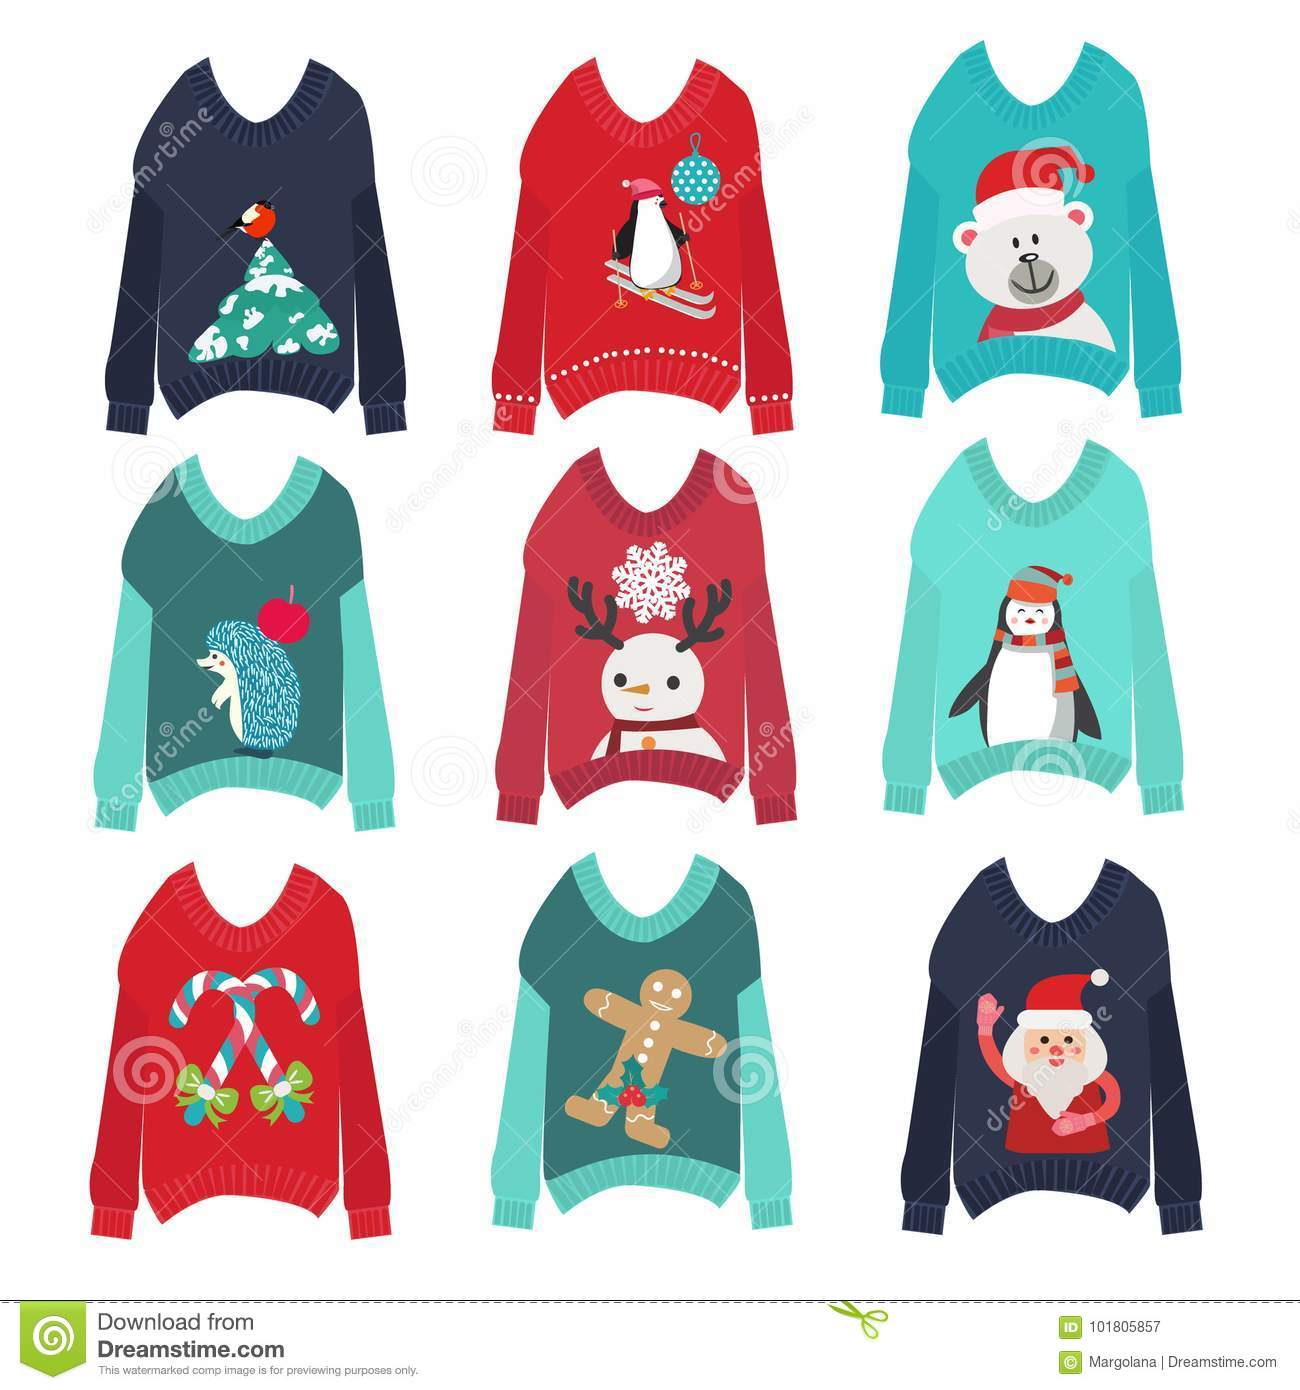 bffa2e29c3 Vector cute ugly christmas sweaters set sweater party collection for  invitations